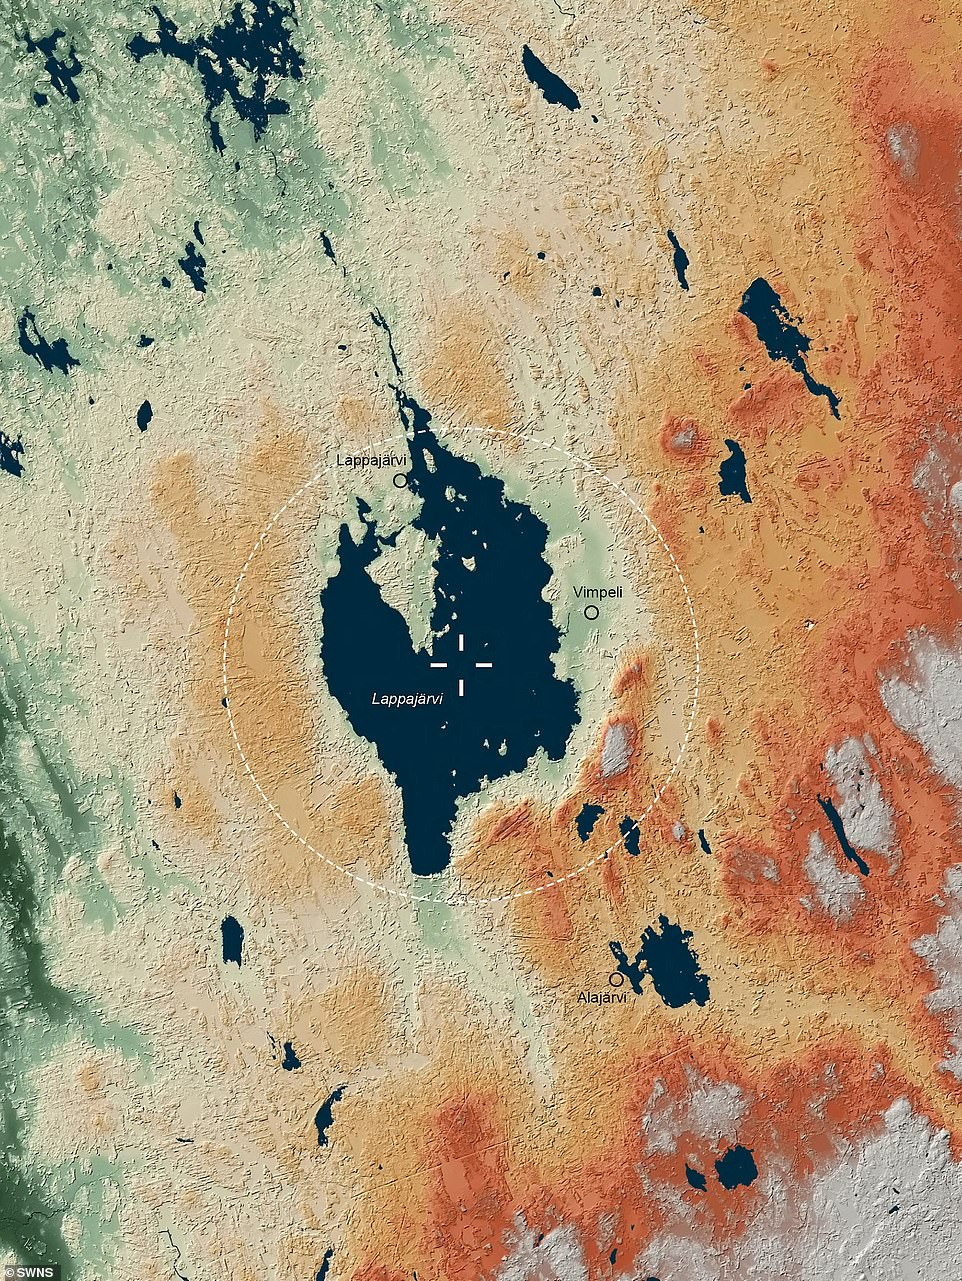 Famous craters such as the Fredfort Crater and Chicxulub Crater in the Mexican Yucatan Peninsula, which put an end to the dinosaurs, also appeared in the atlas. Pictured: Lappajarvi Crater, Finland